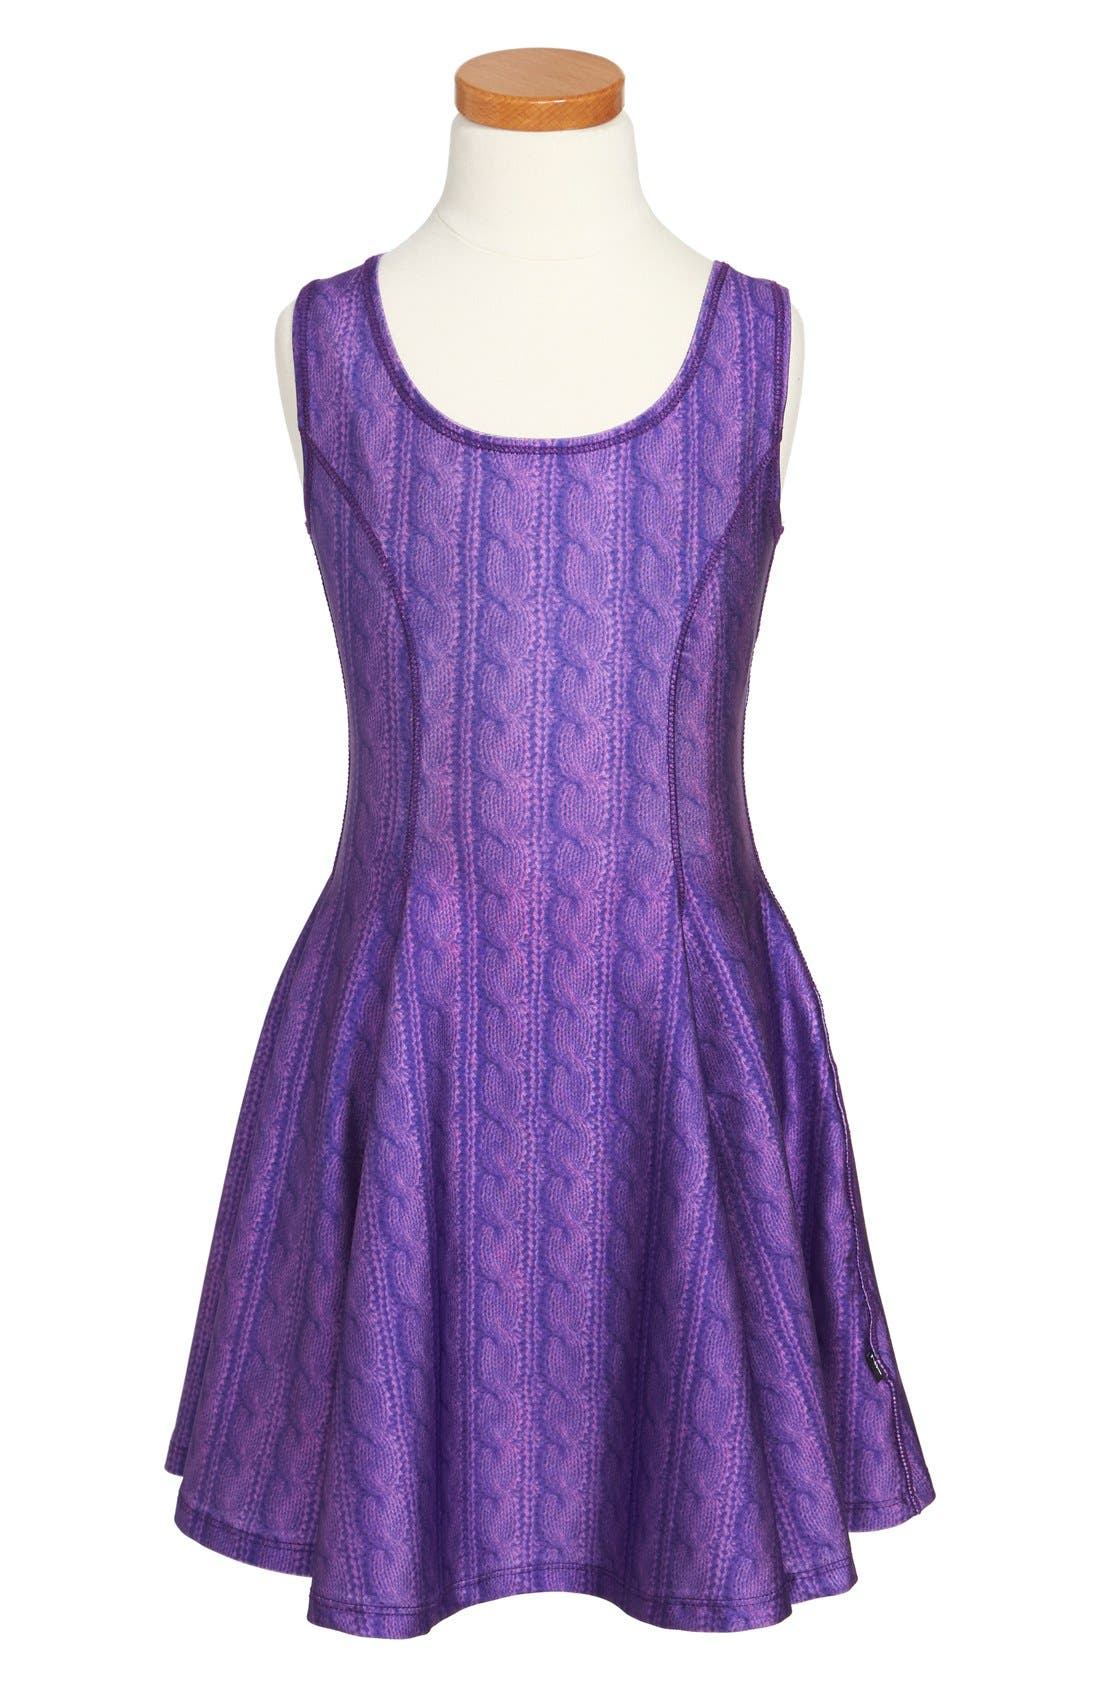 Alternate Image 1 Selected - Terez Cable Knit Dress (Big Girls)